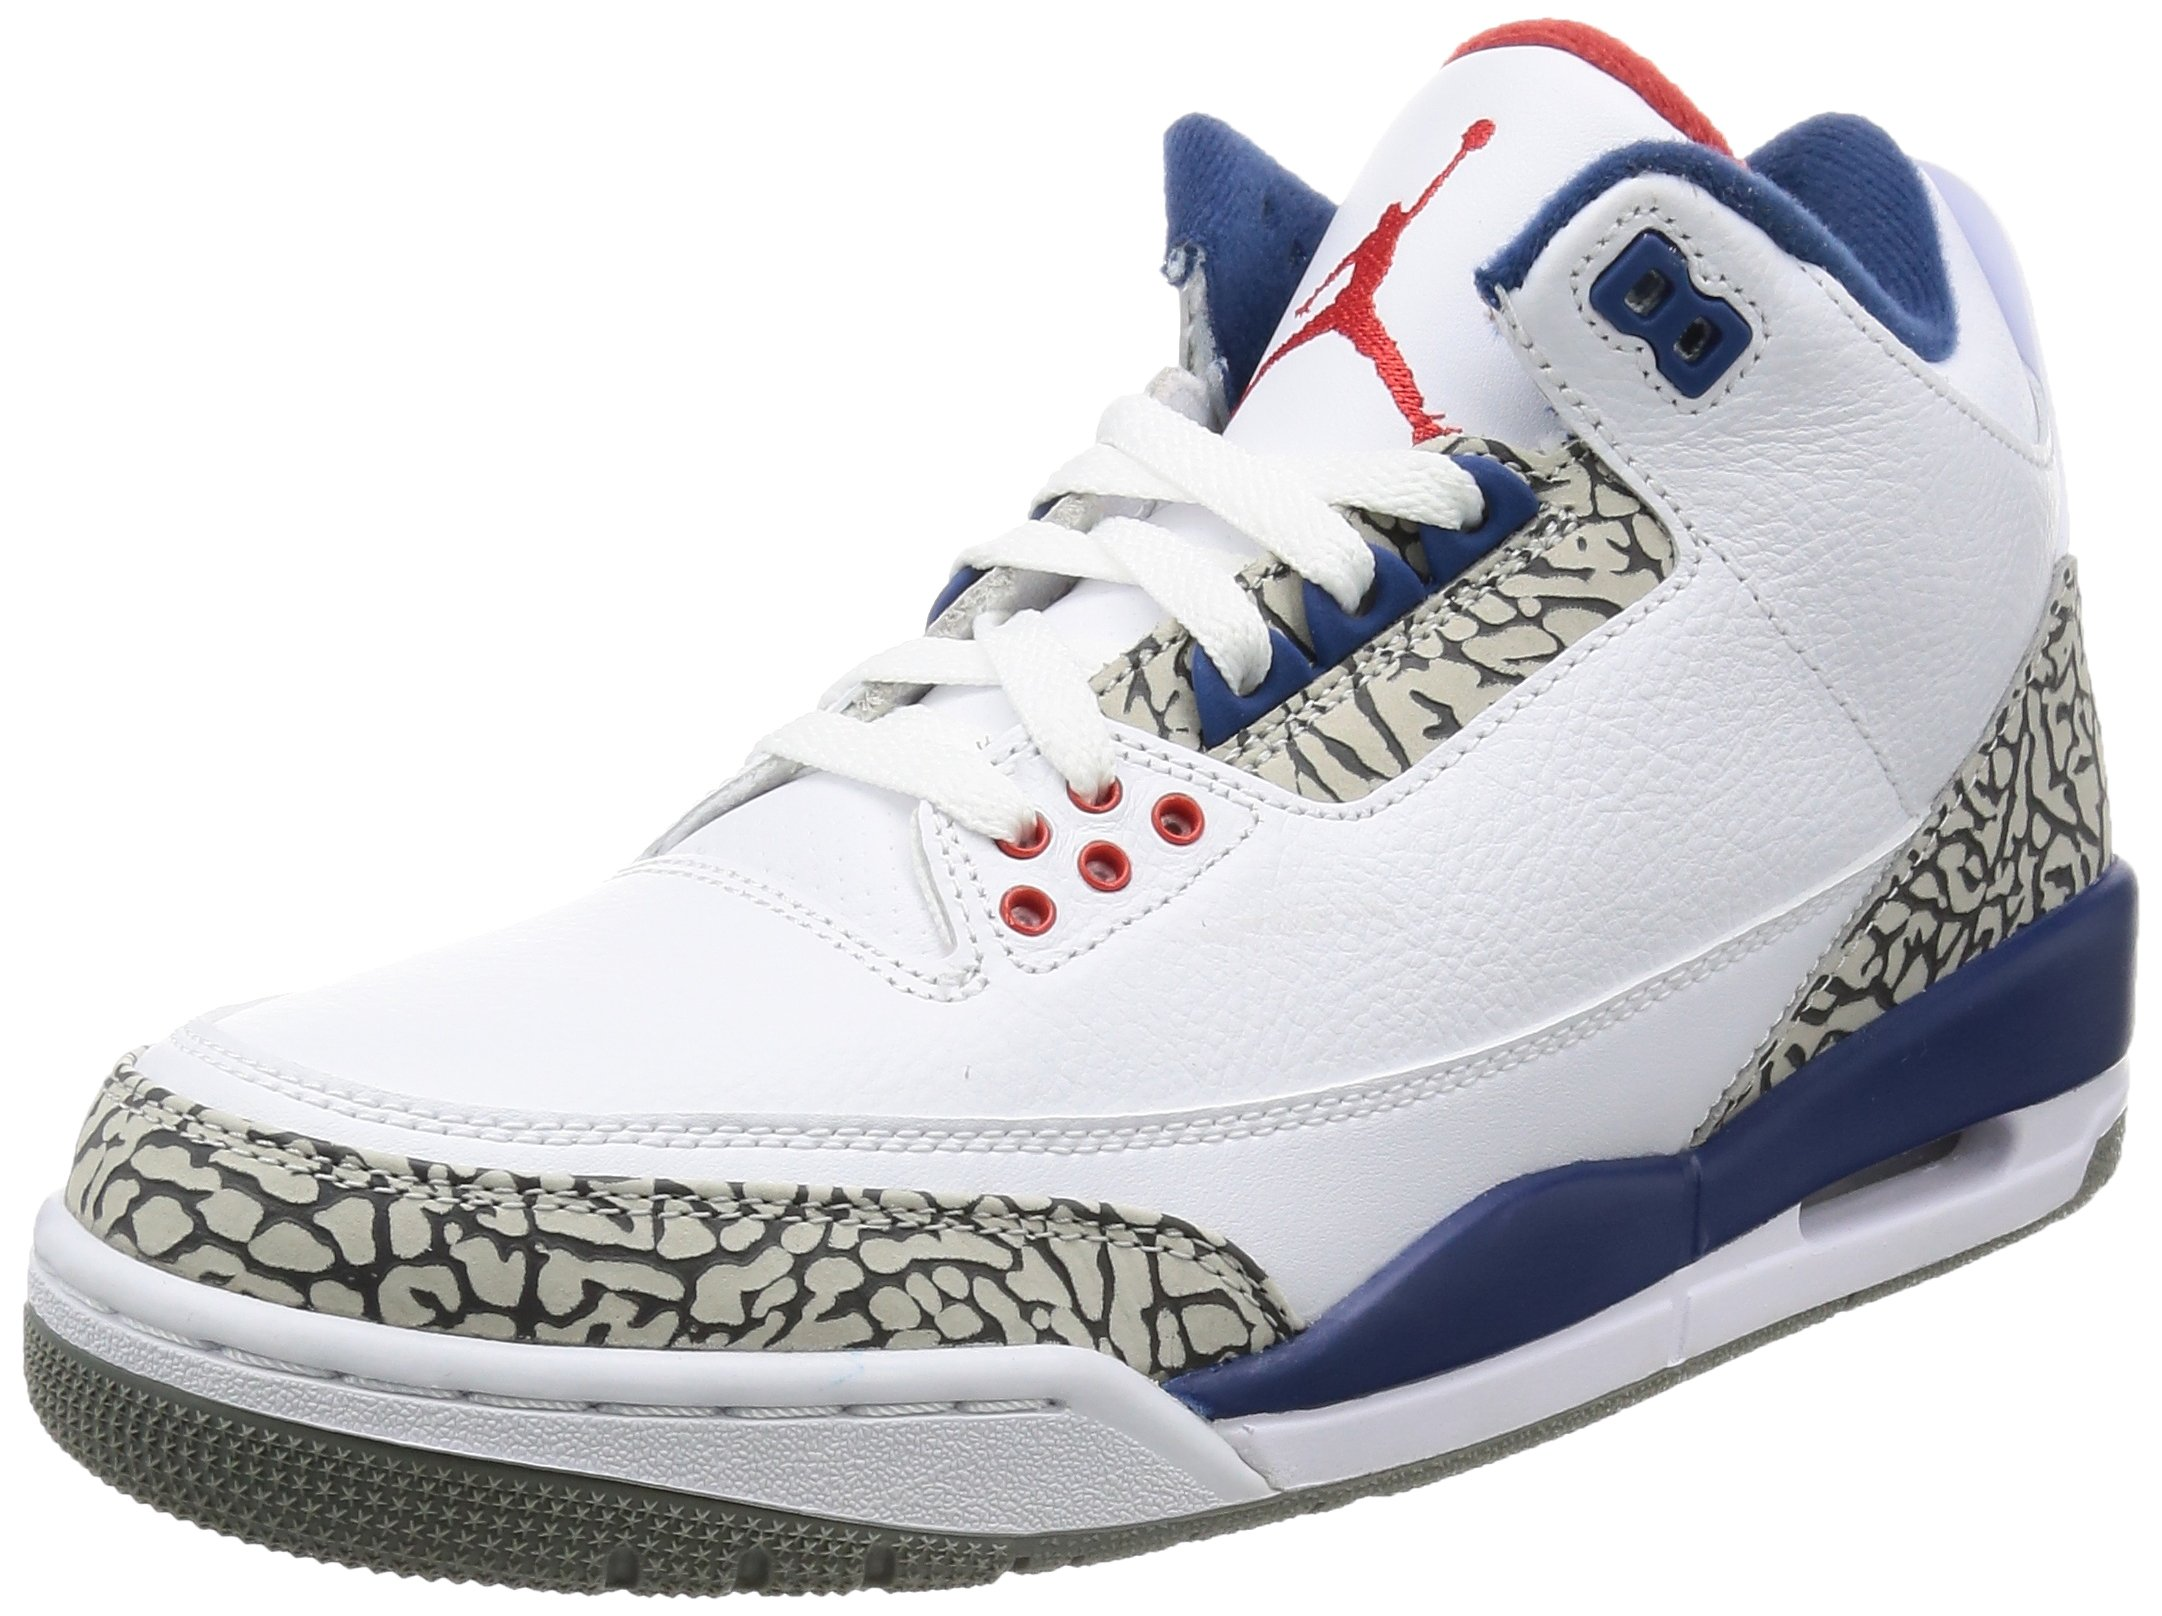 Nike Men's Air Jordan 3 Retro OG White/Fire Red-true Blue-cement Grey - 7 D(M) US by NIKE